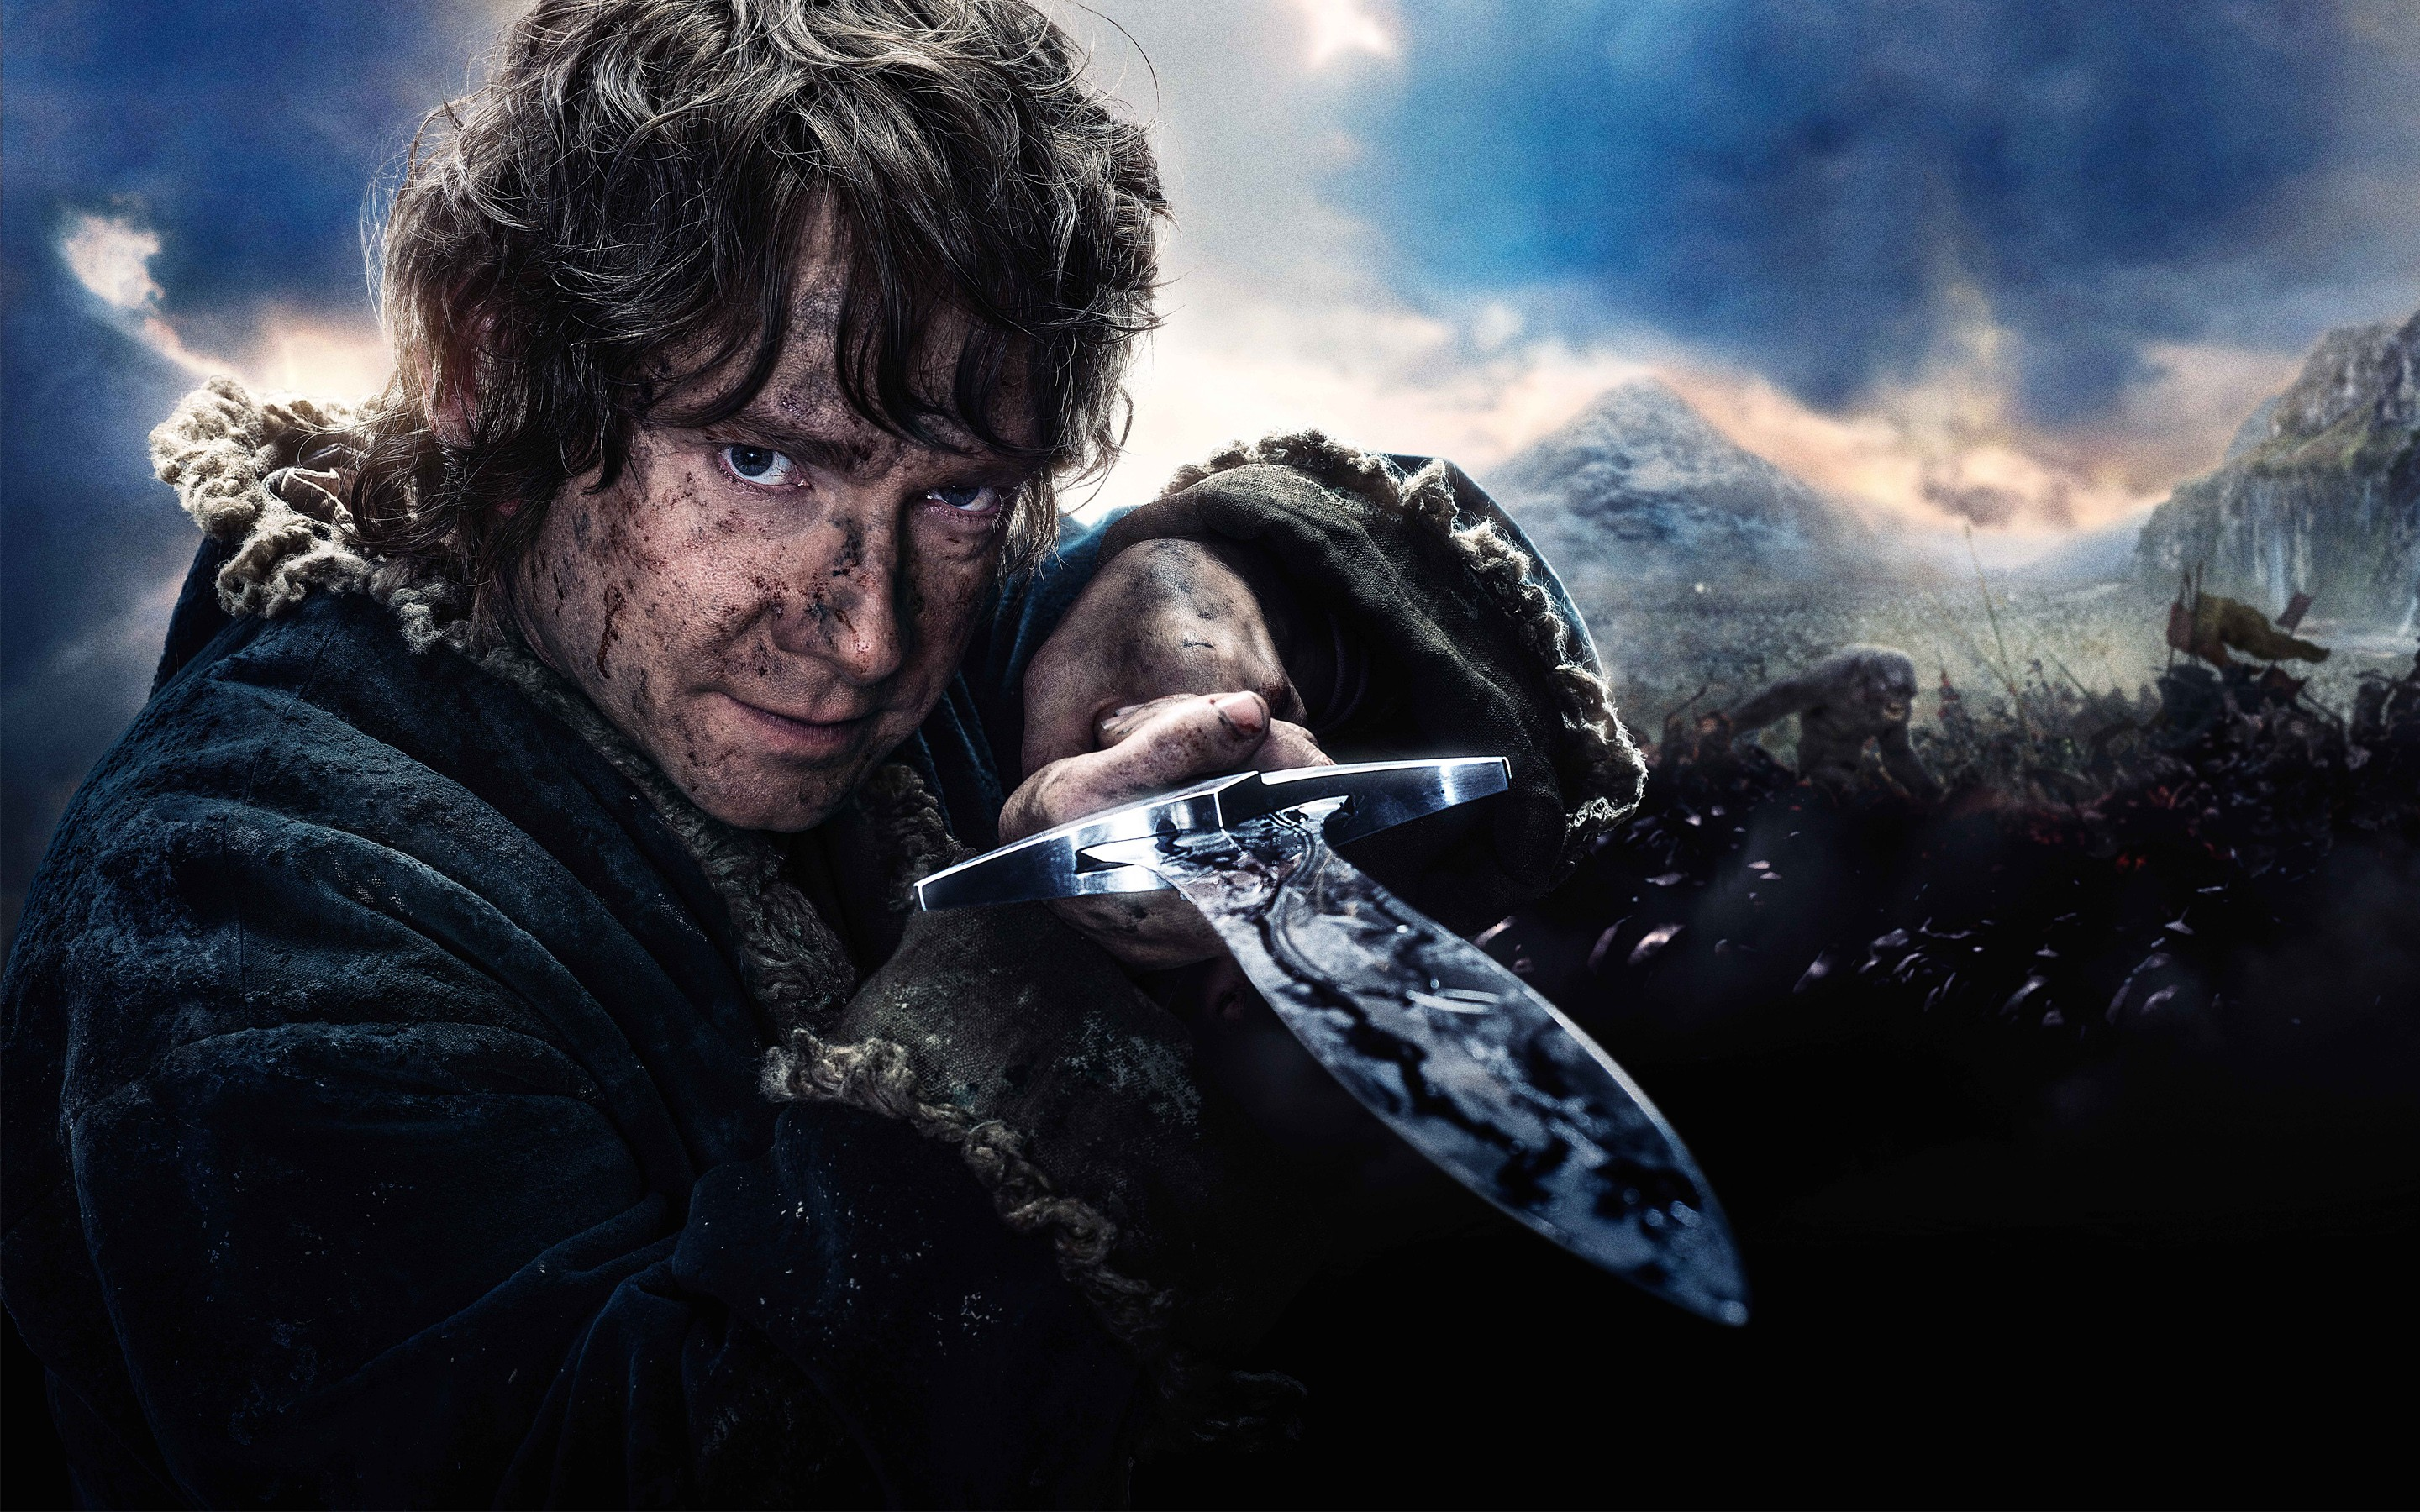 the hobbit bilbo baggins Bilbo baggins was a hobbit and the uncle of frodo baggins bilbo's adventures started early one morning when he stepped outside his home for a smoke all of a sudden the wizard gandalf appeared.